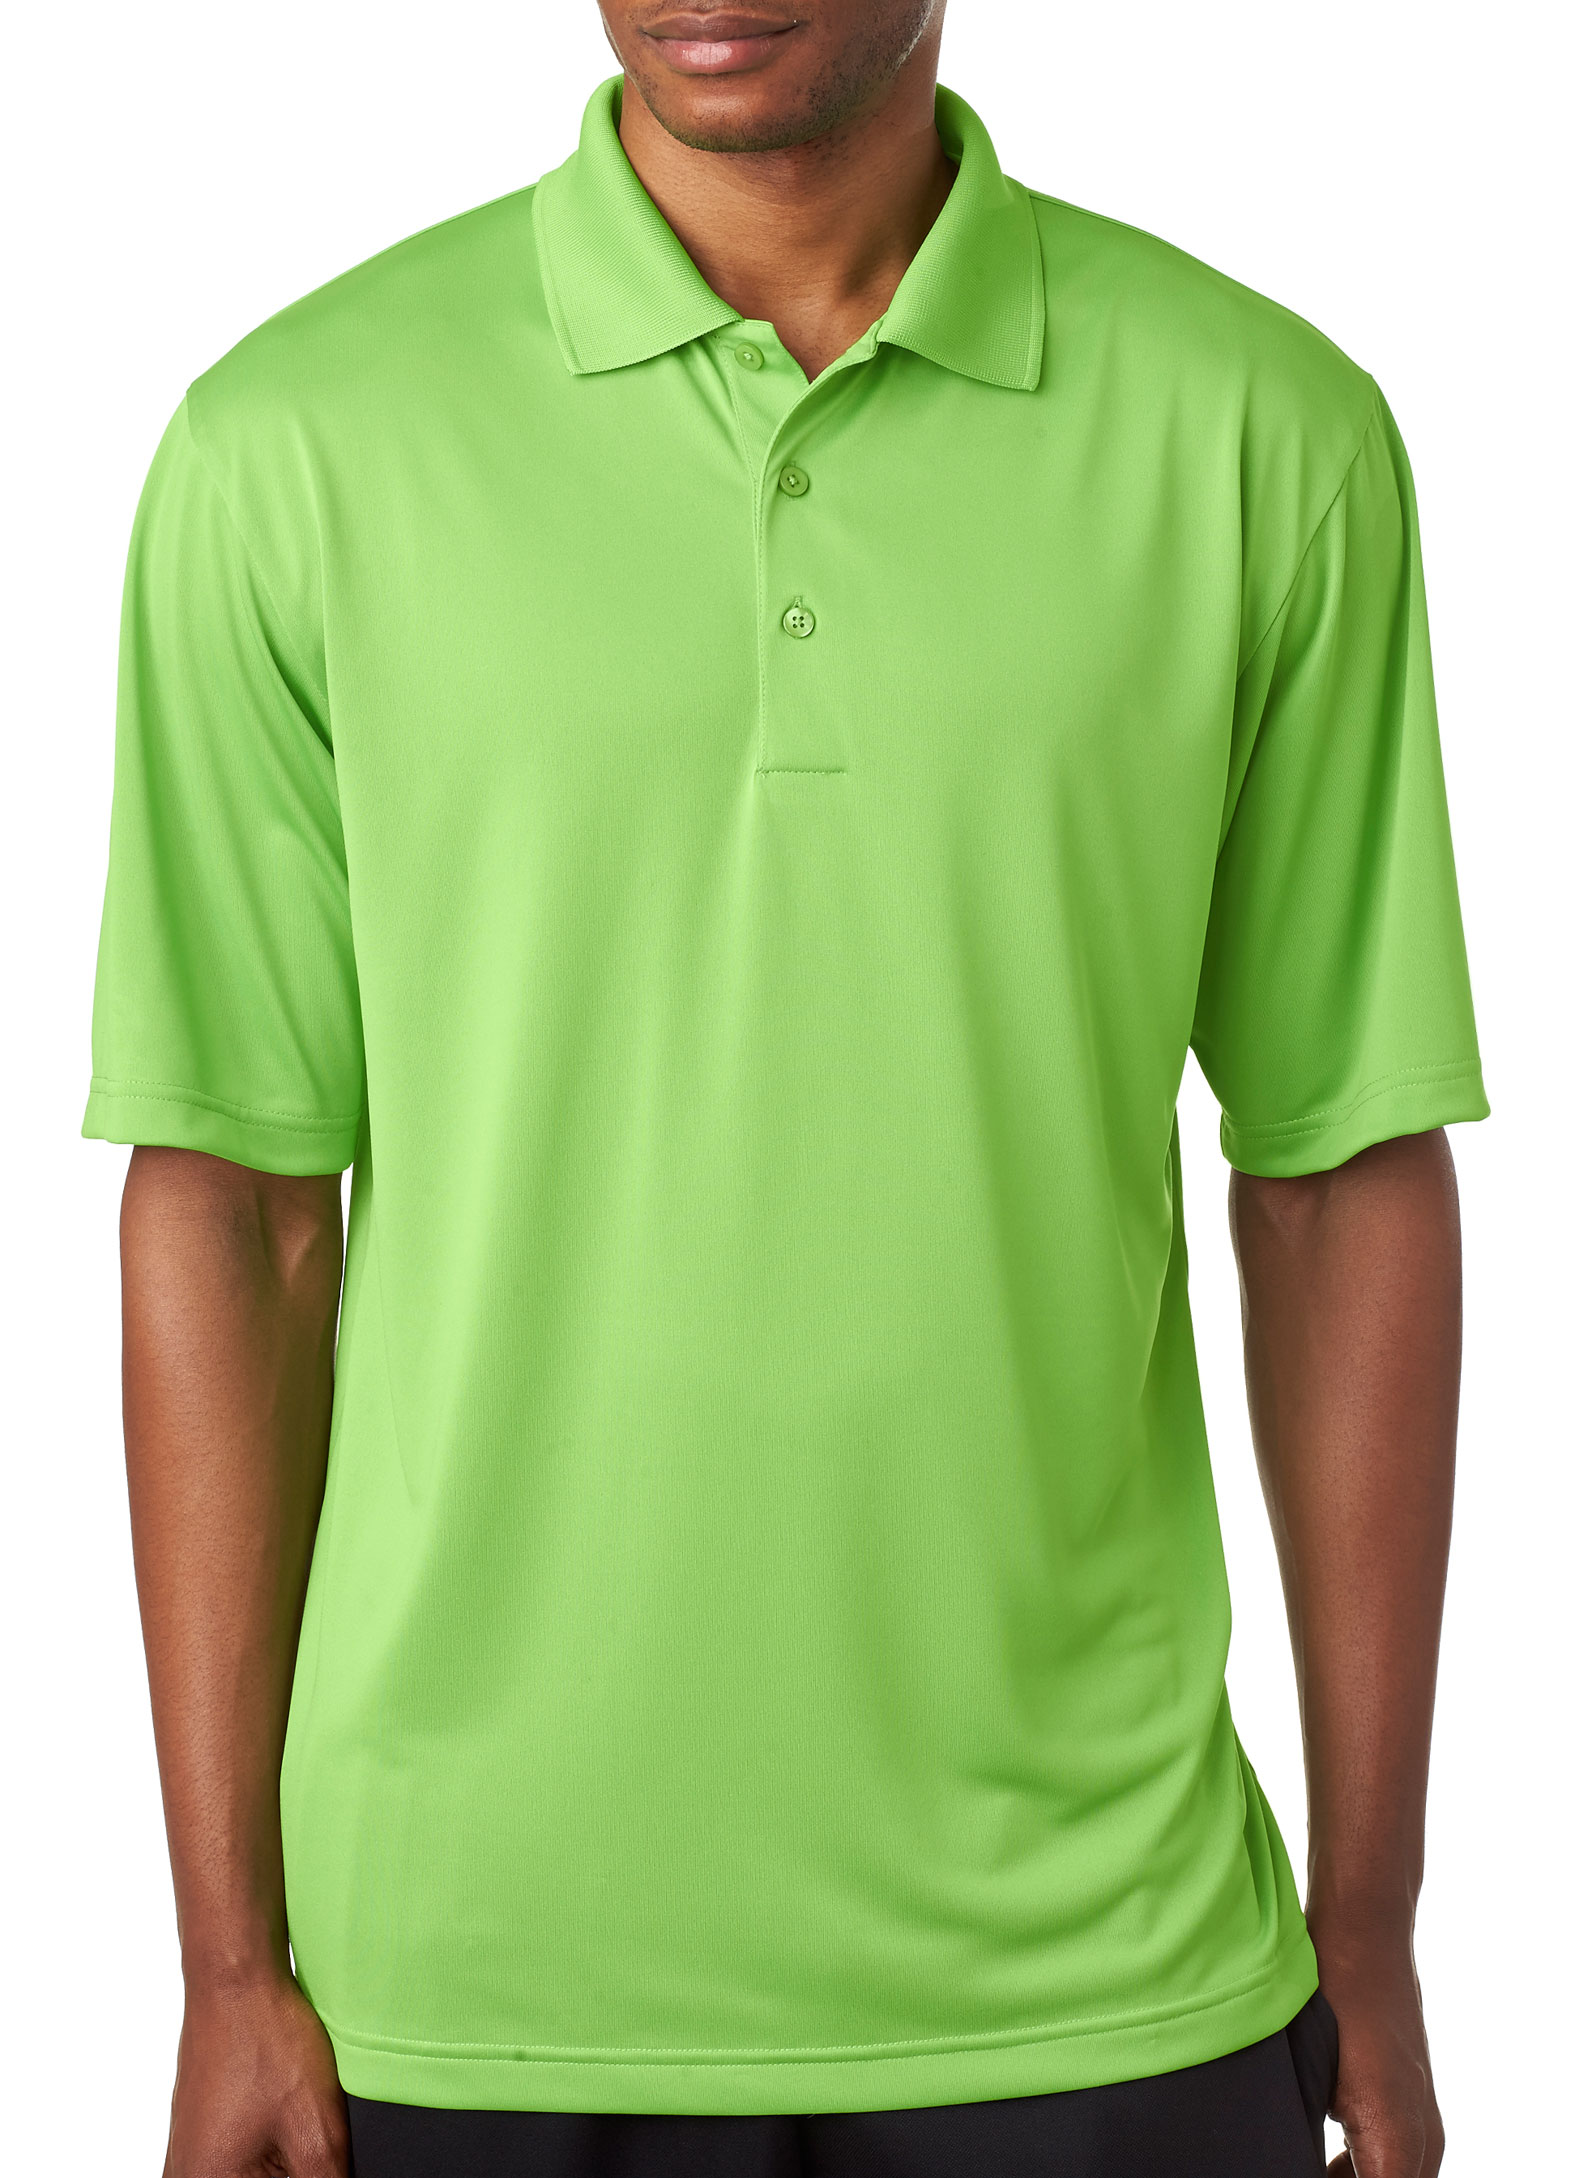 Mens Cool & Dry 8 Star Elite Performance Interlock Polo